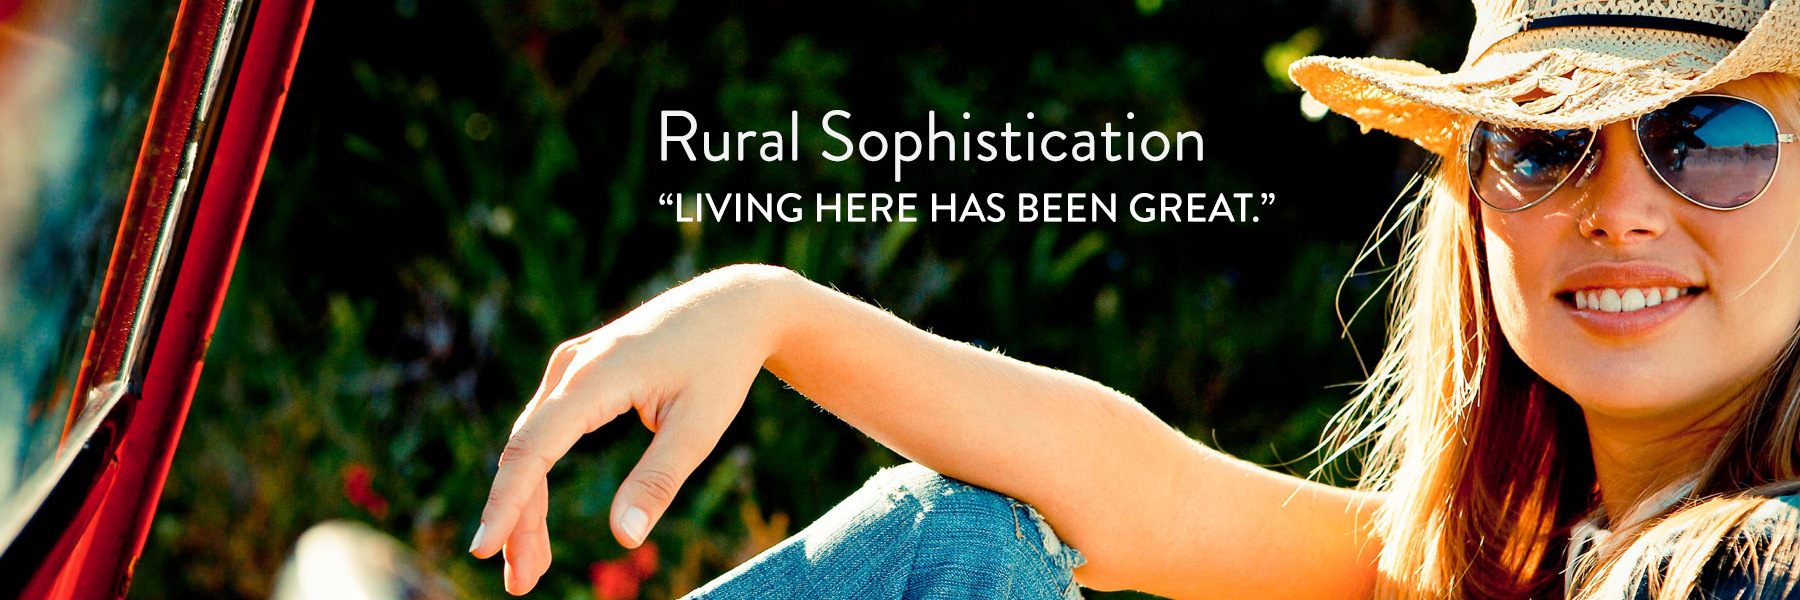 Rural Sophistication